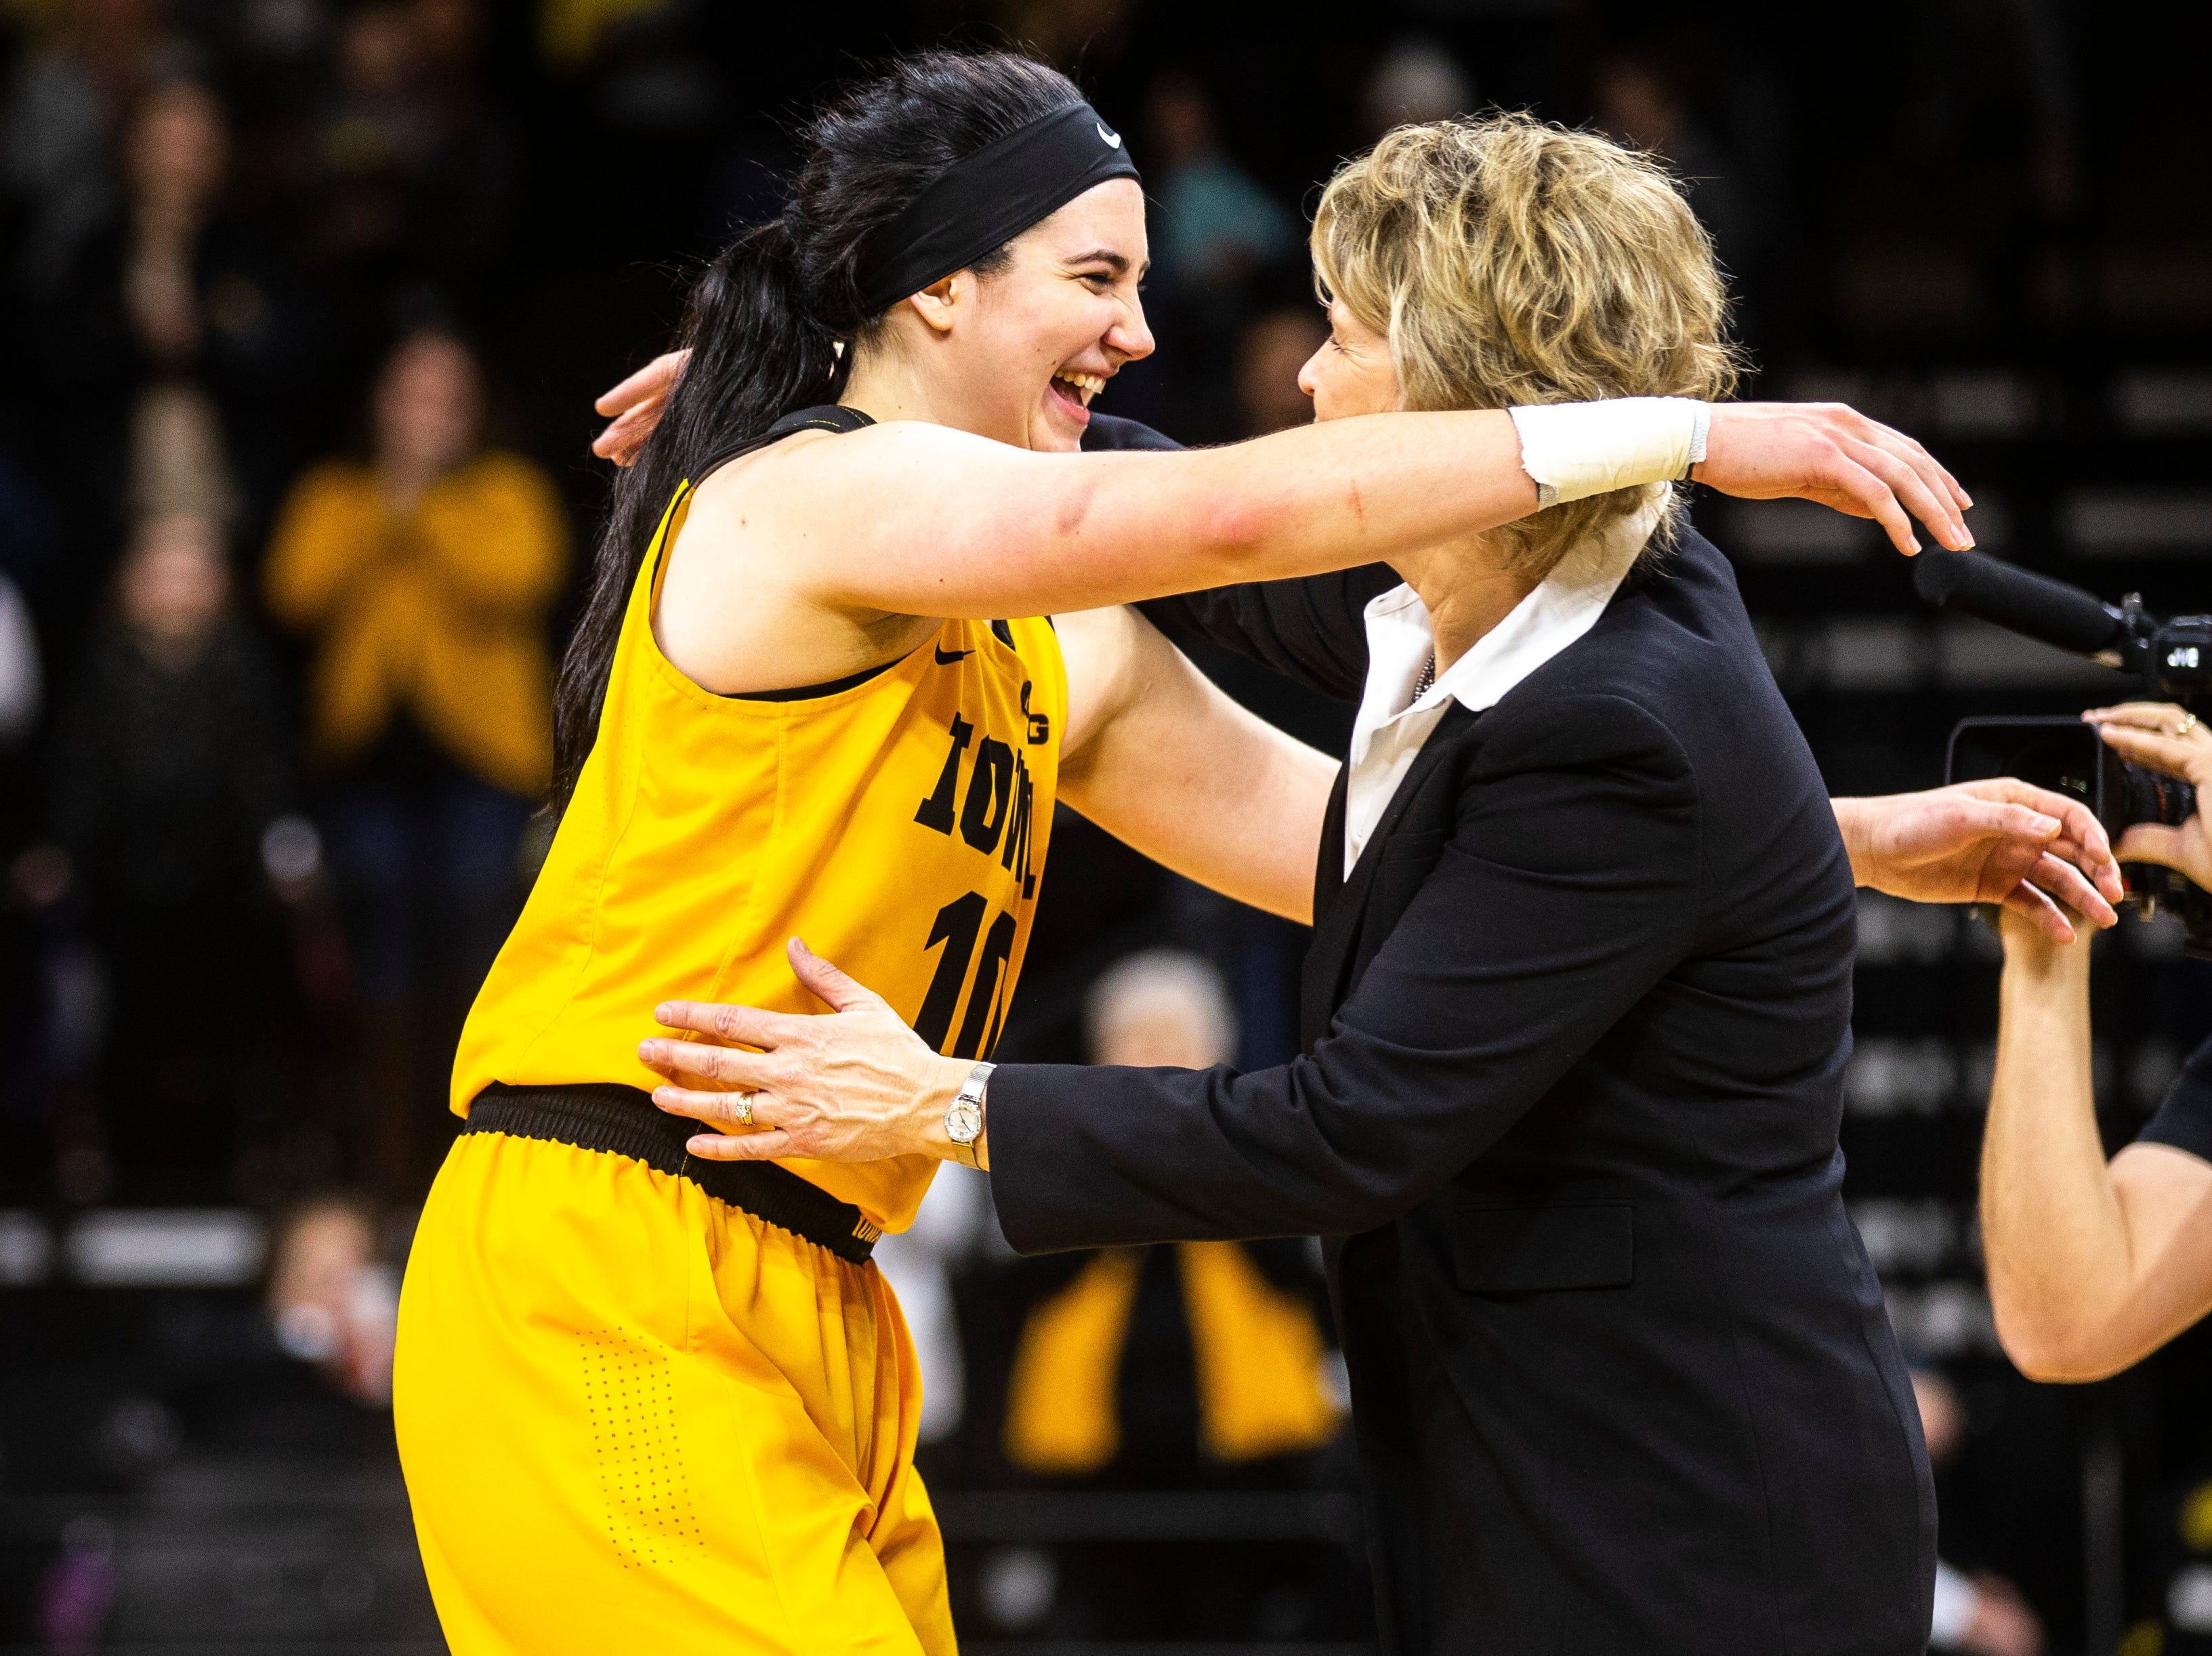 Iowa center Megan Gustafson (10) embraces Iowa head coach Lisa Bluder after a NCAA Big Ten Conference women's basketball game on Sunday, March 3, 2019, at Carver-Hawkeye Arena in Iowa City, Iowa.